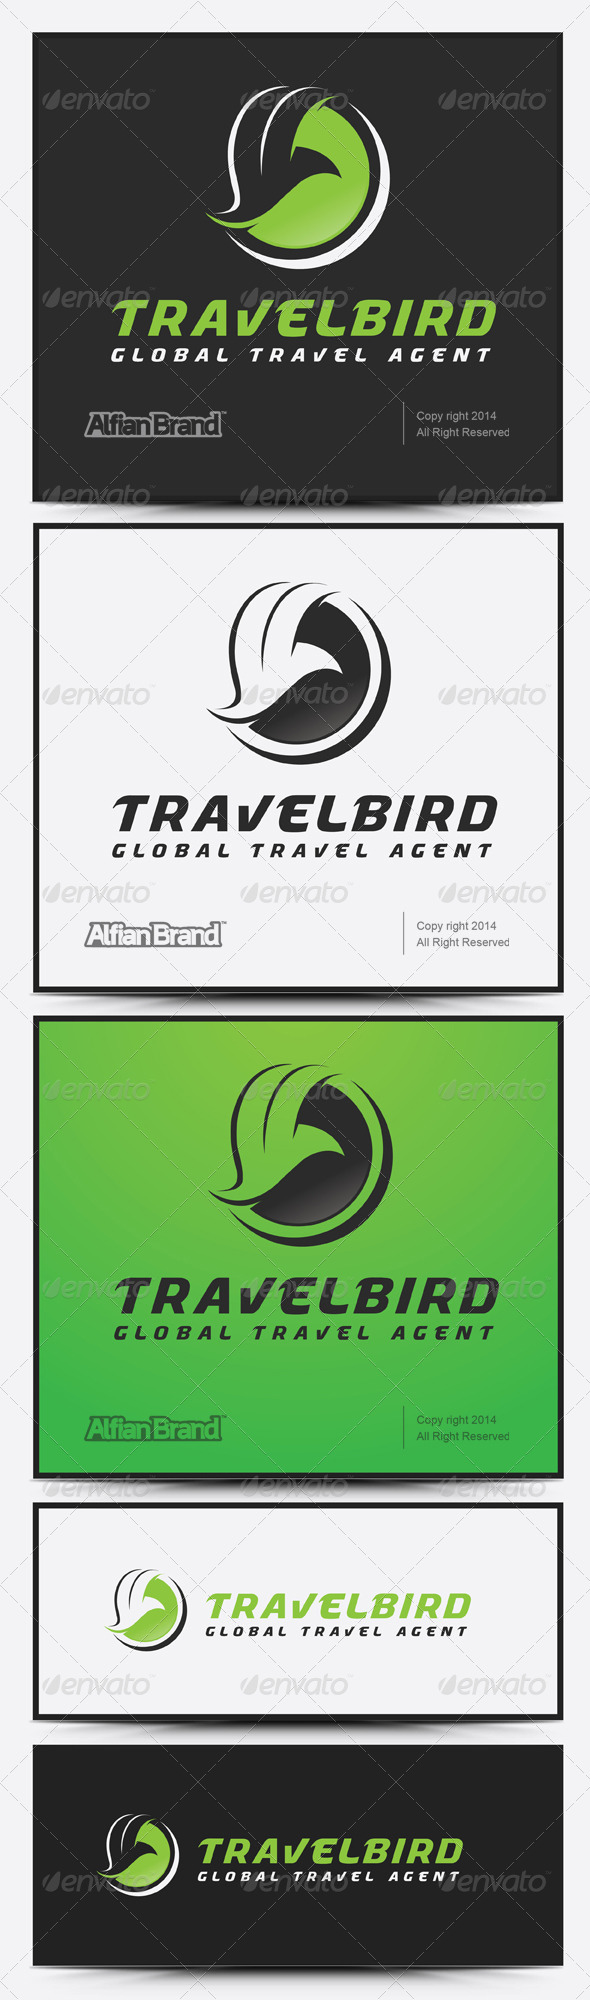 GraphicRiver Travel Bird Logo 7894796